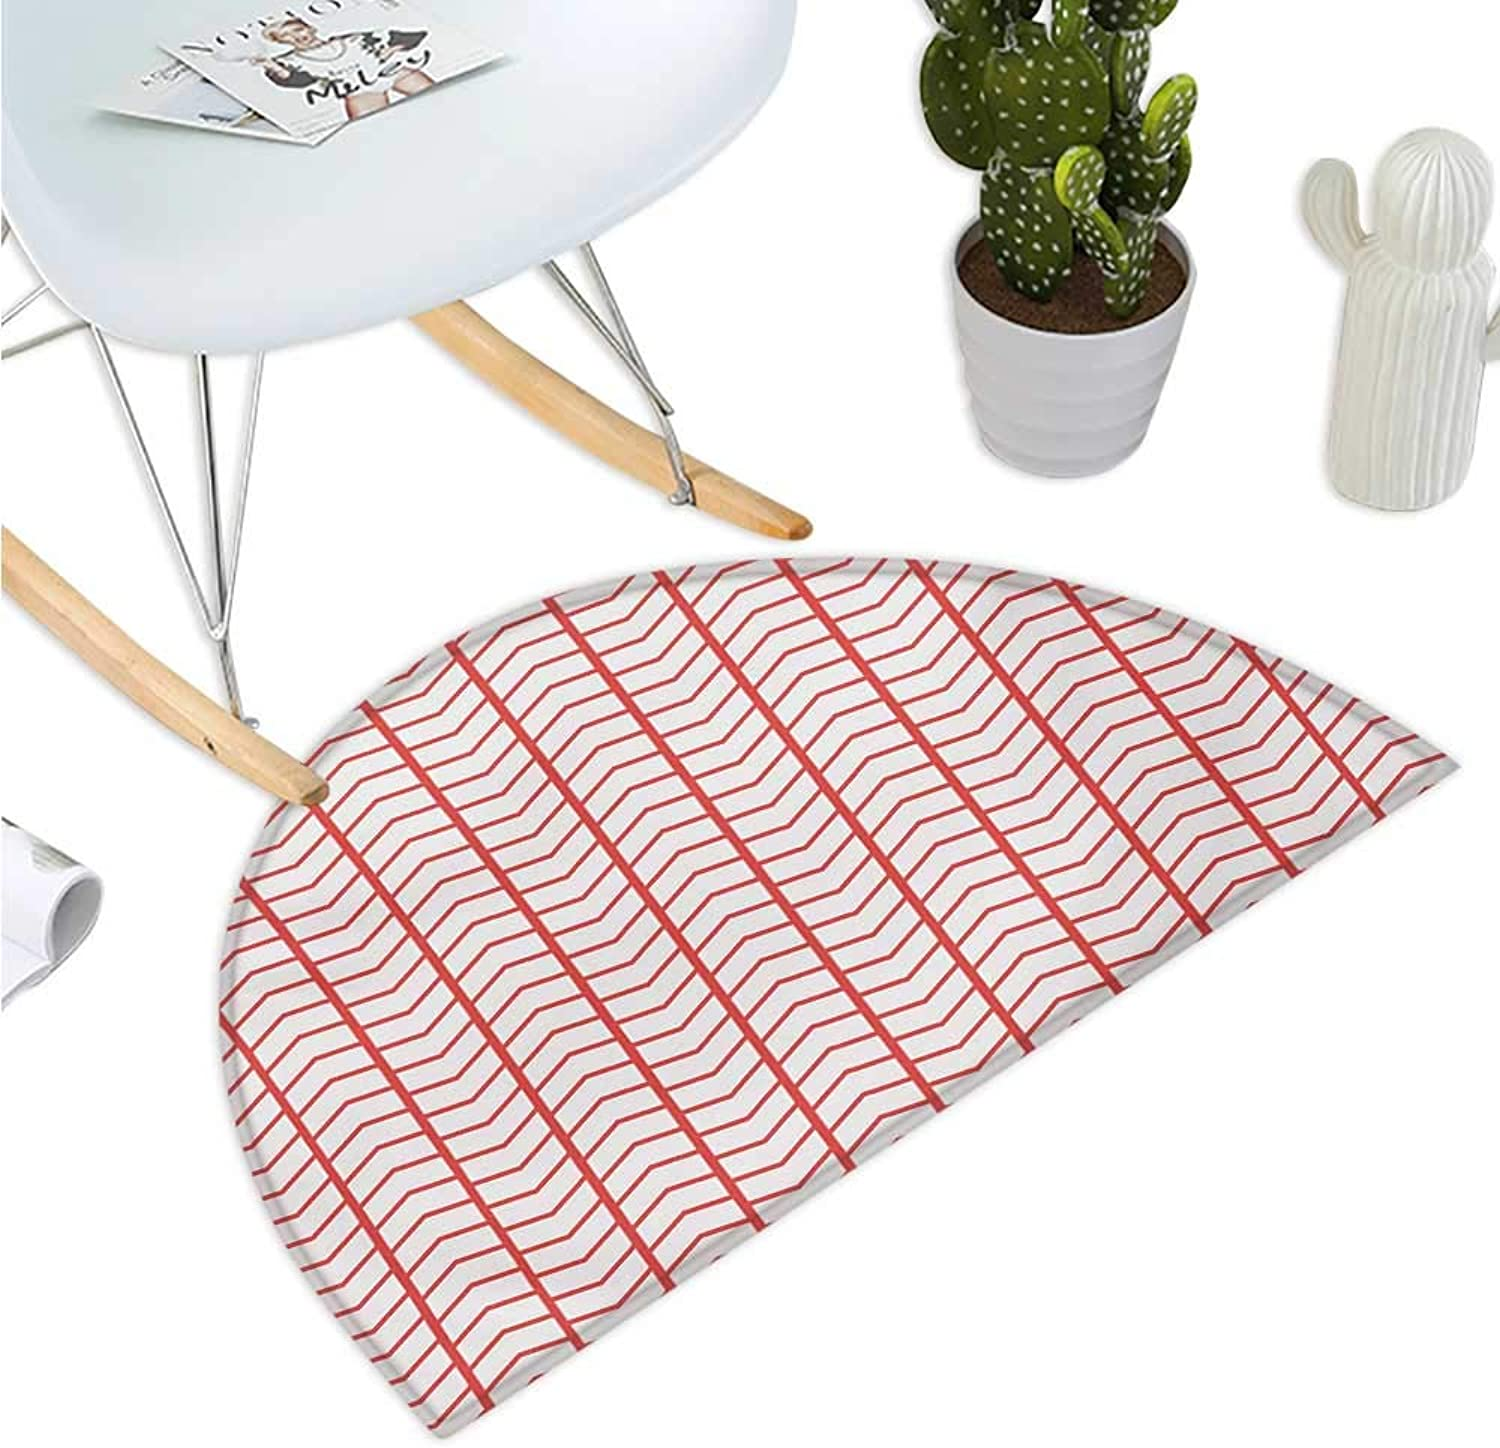 Modern Semicircle Doormat Geometrical Chevron Lines and Triangle Shaped Border Seem Artwork Image Entry Door Mat H 43.3  xD 64.9  Dark Coral and White